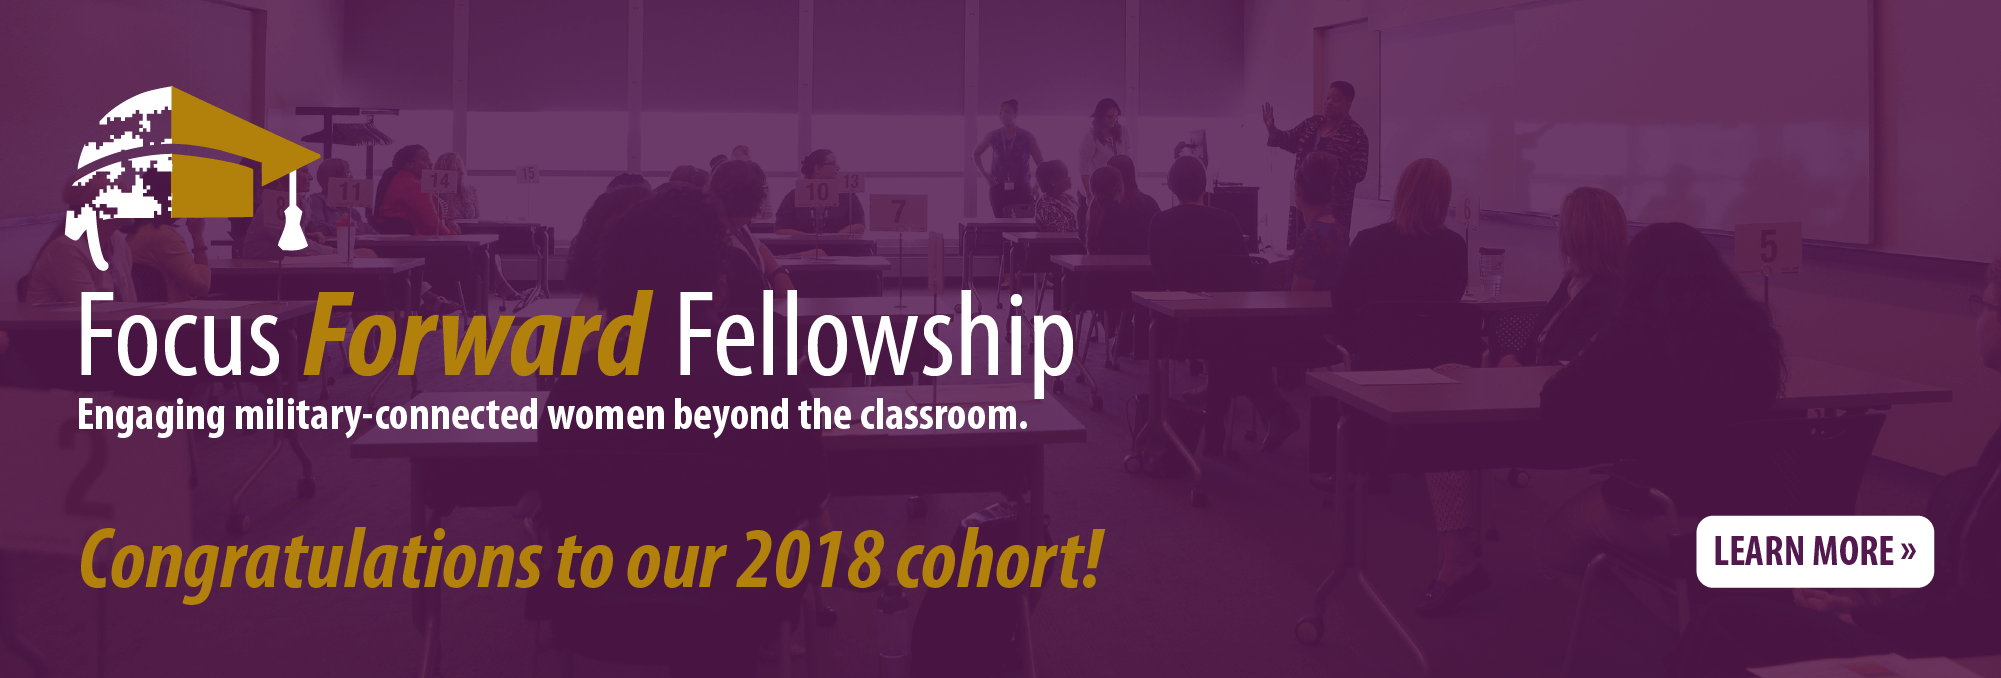 Congratulations to our 2018 cohort!